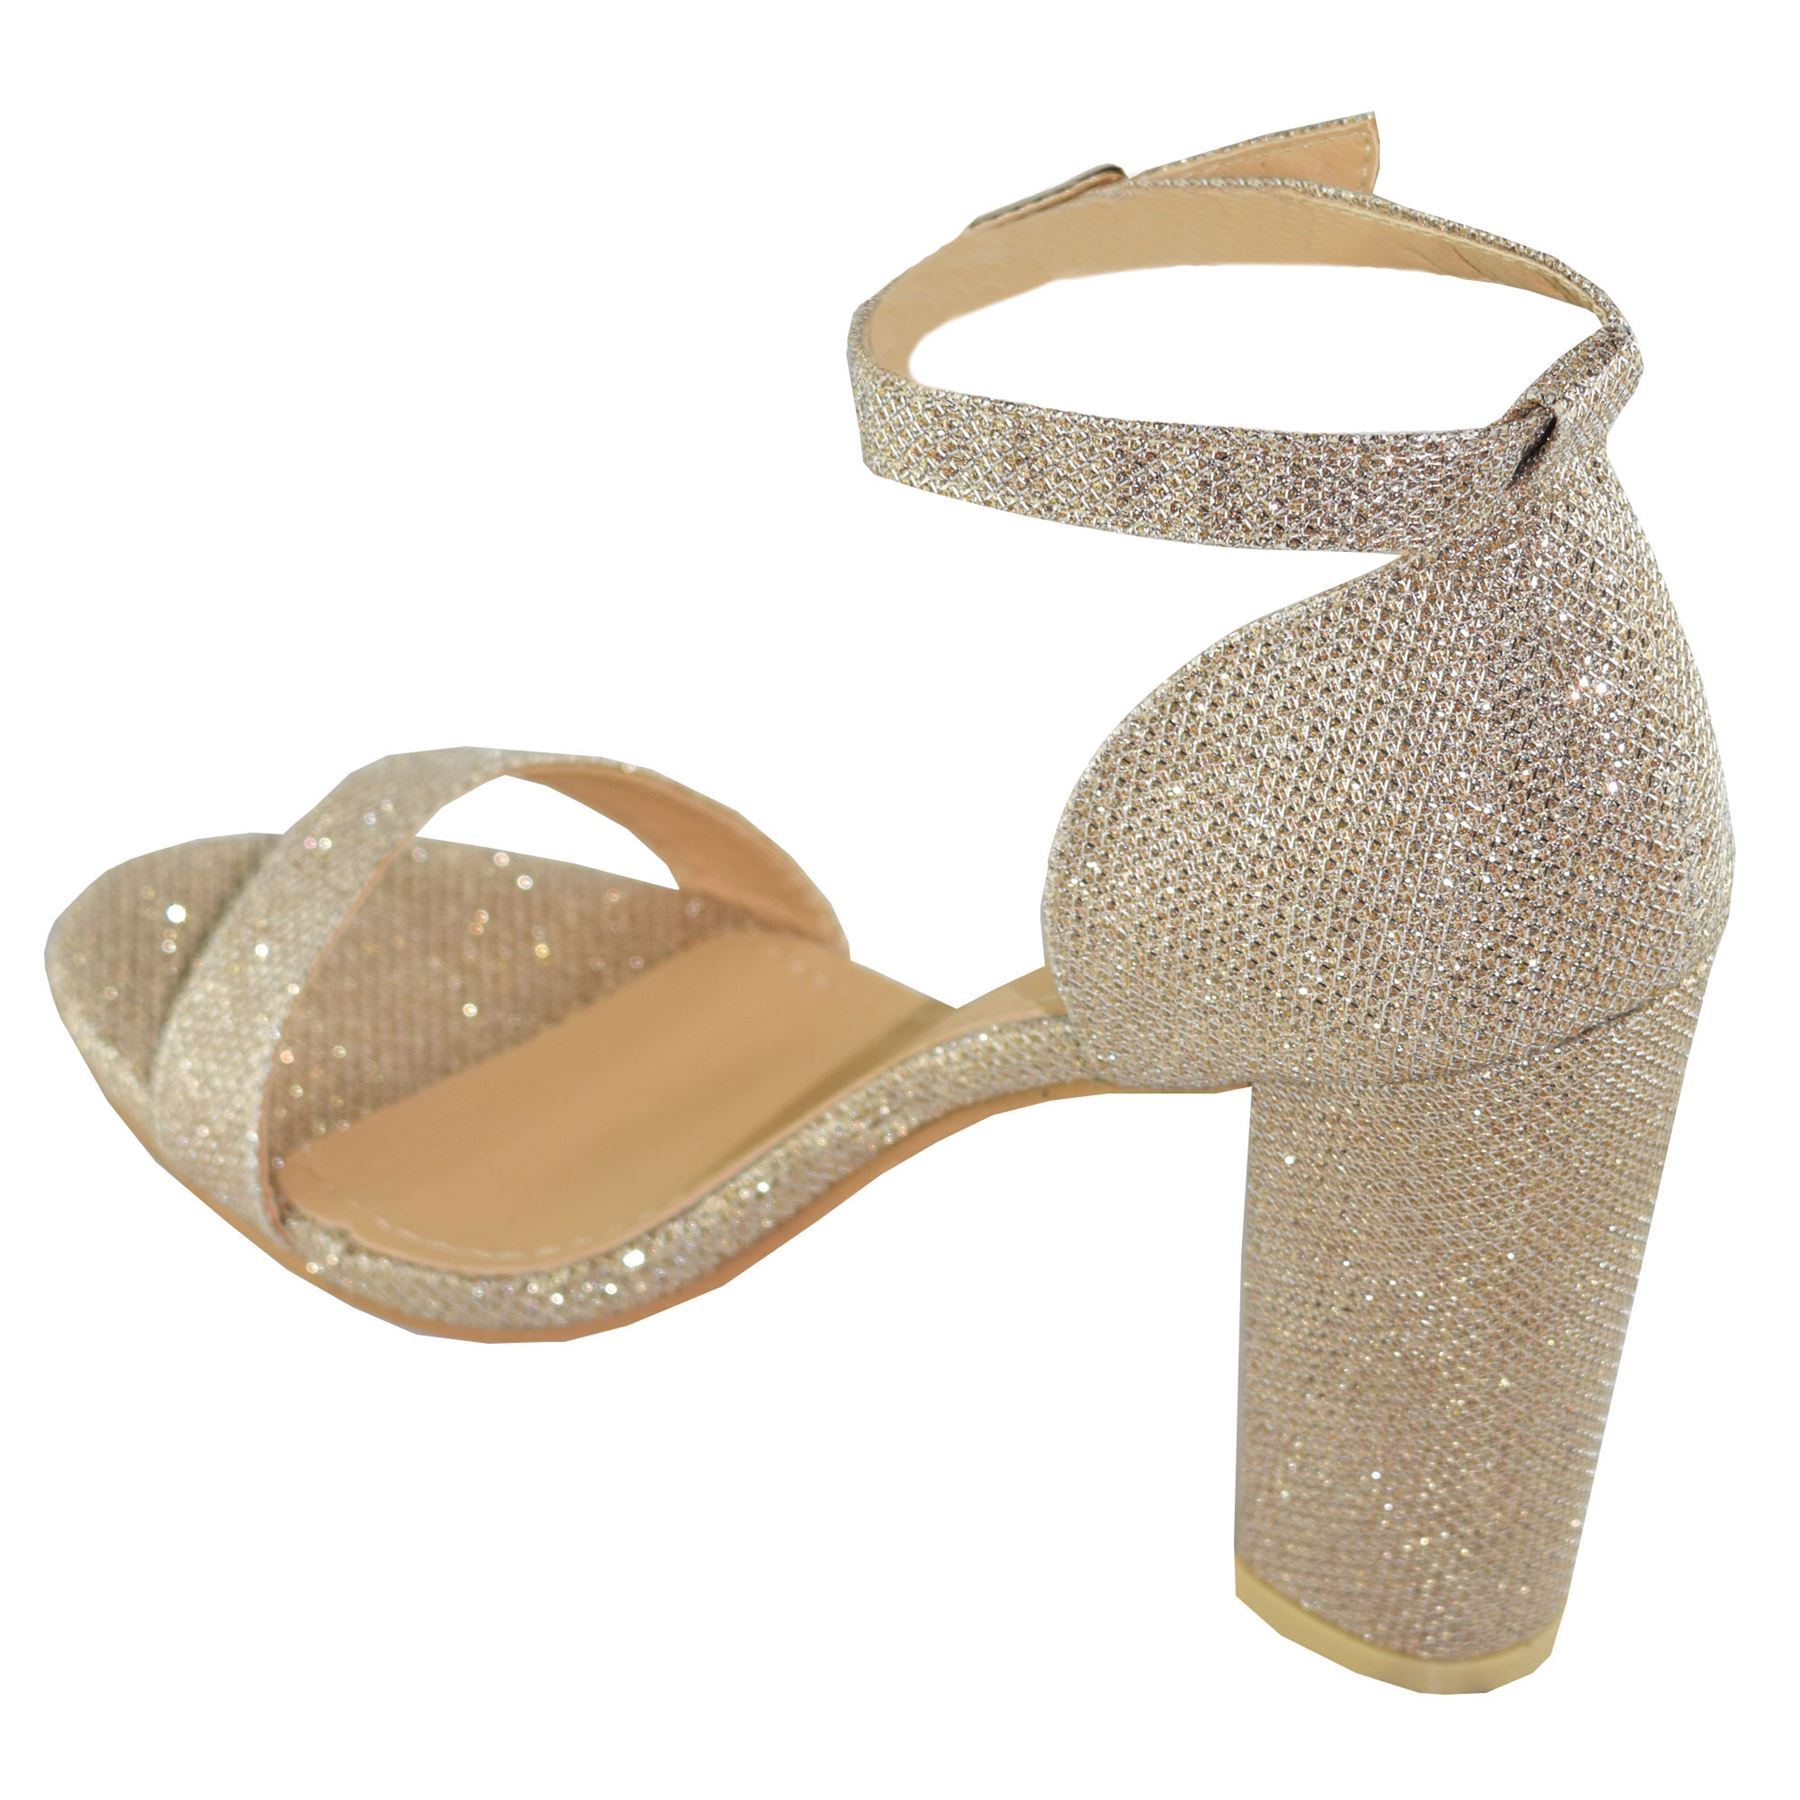 032f32e9b23 New Womens Mid Block Heel Ankle Strap Sparkle Formal Casual Giltter ...